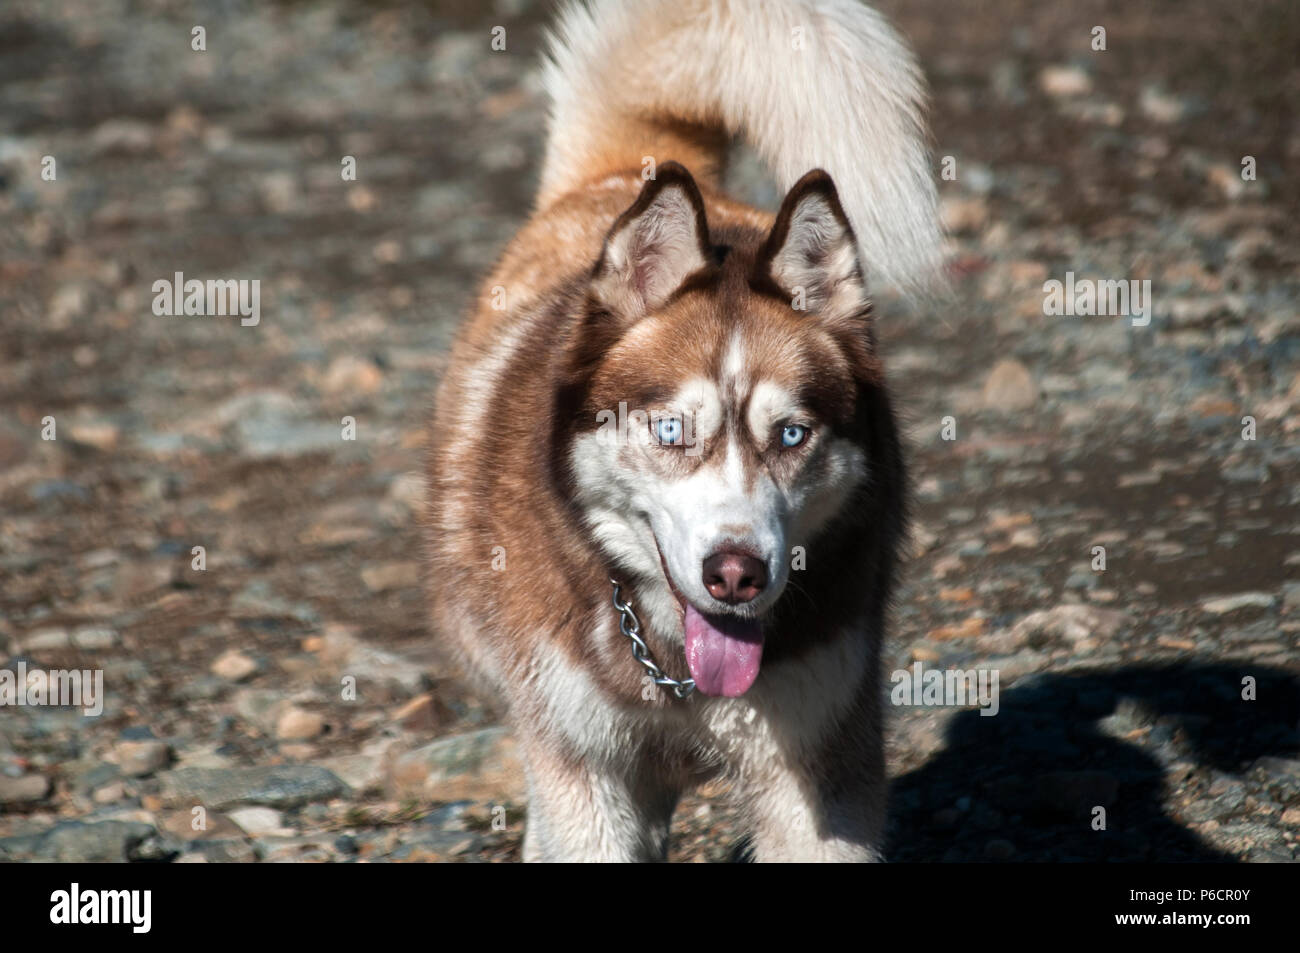 Red and white siberian male husky dog closeup on gravel road background - Stock Image